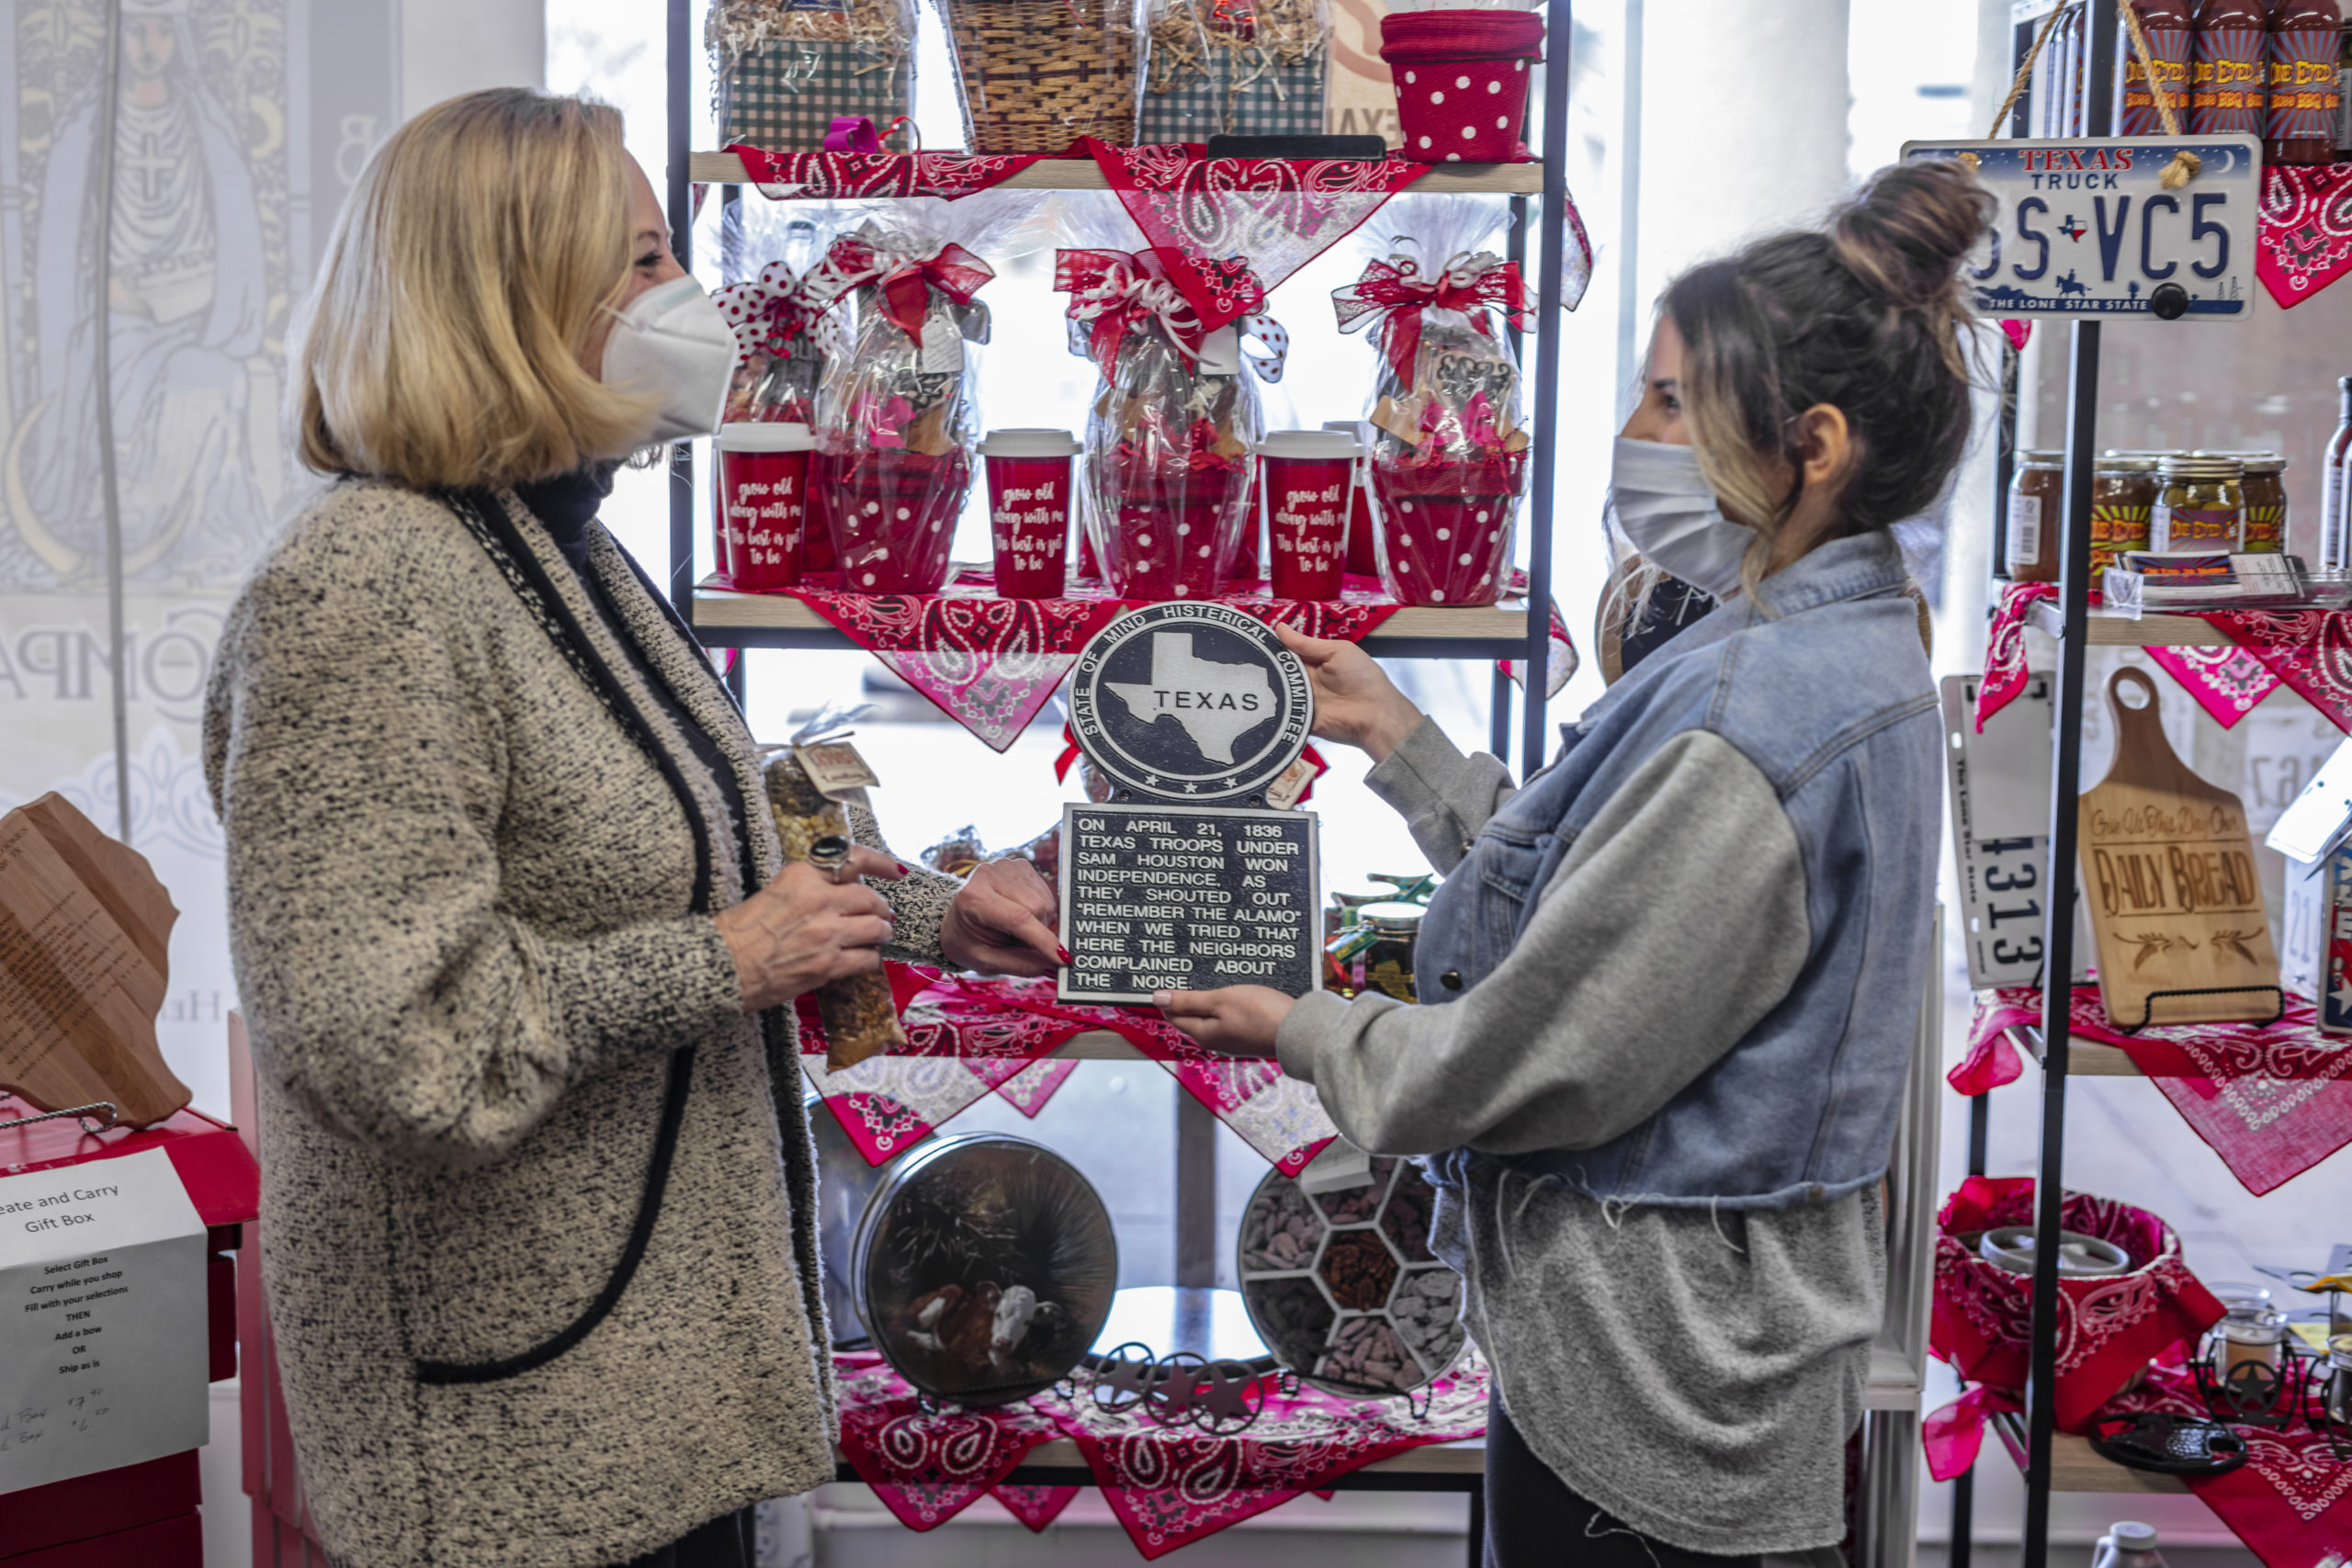 Discover Texas by Texans, a booth at Cottonwood Market Showcasing Texas Artisans